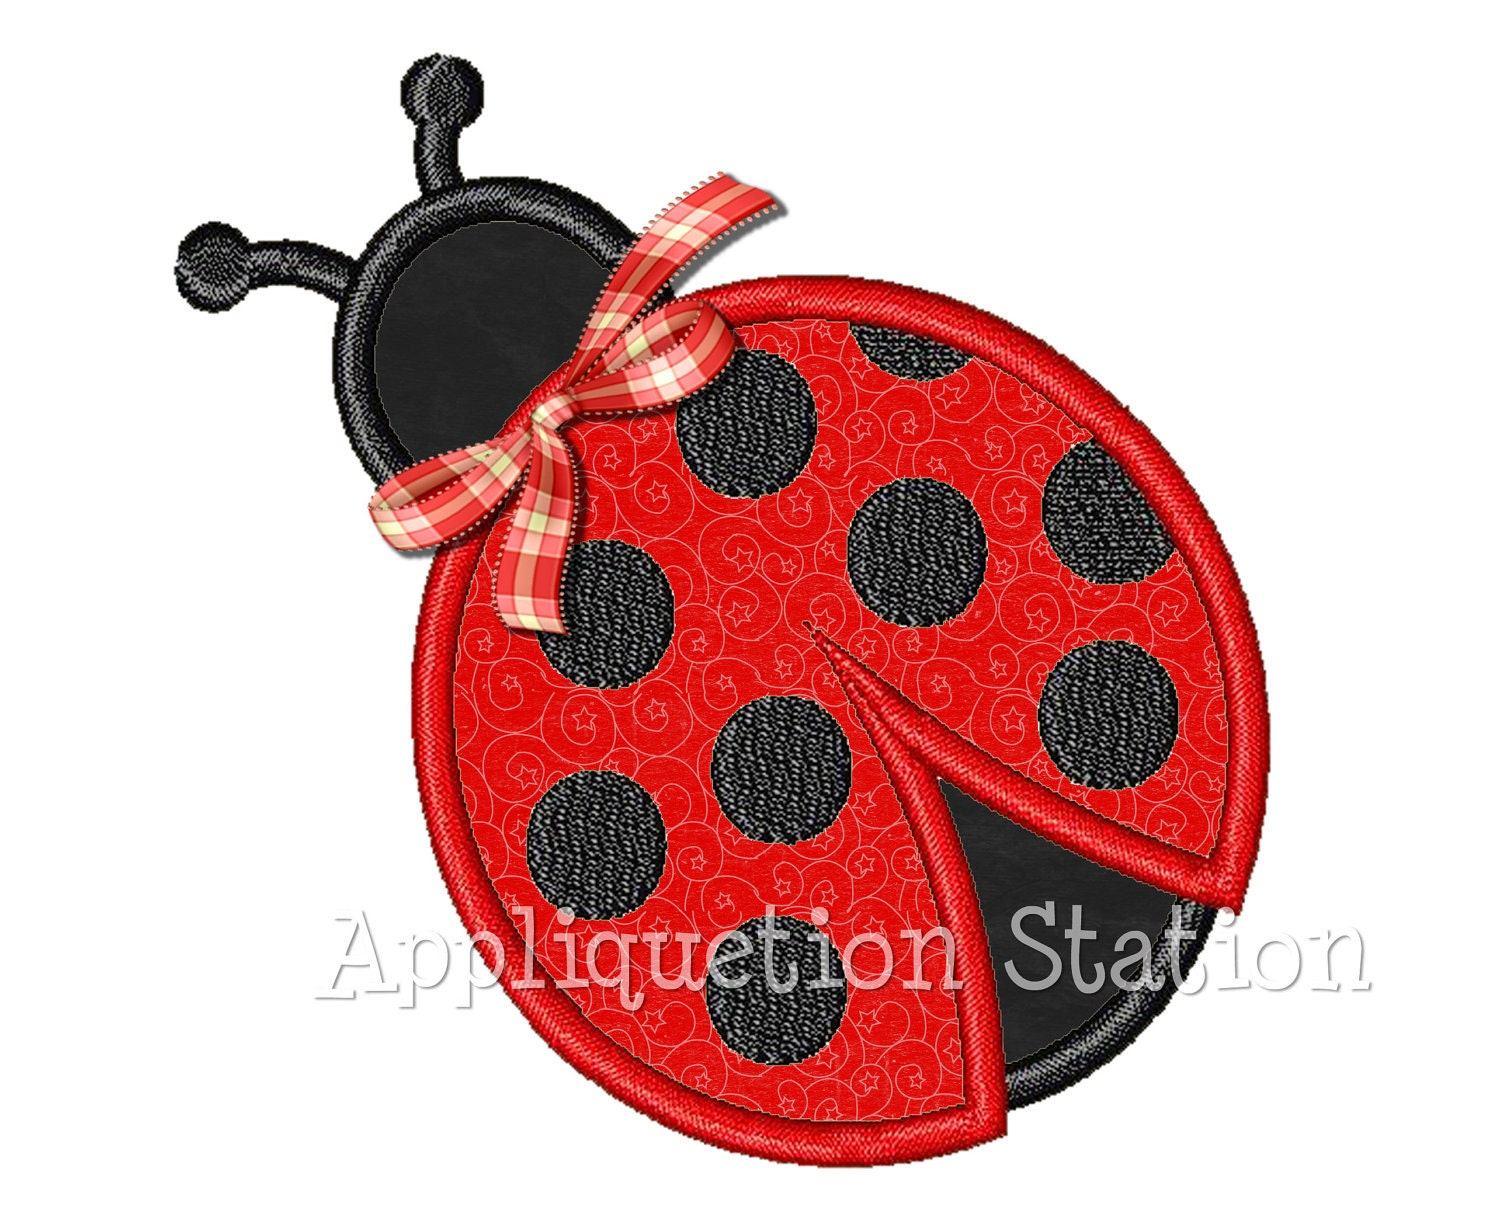 ladybug ladybird applique machine embroidery design red black. Black Bedroom Furniture Sets. Home Design Ideas